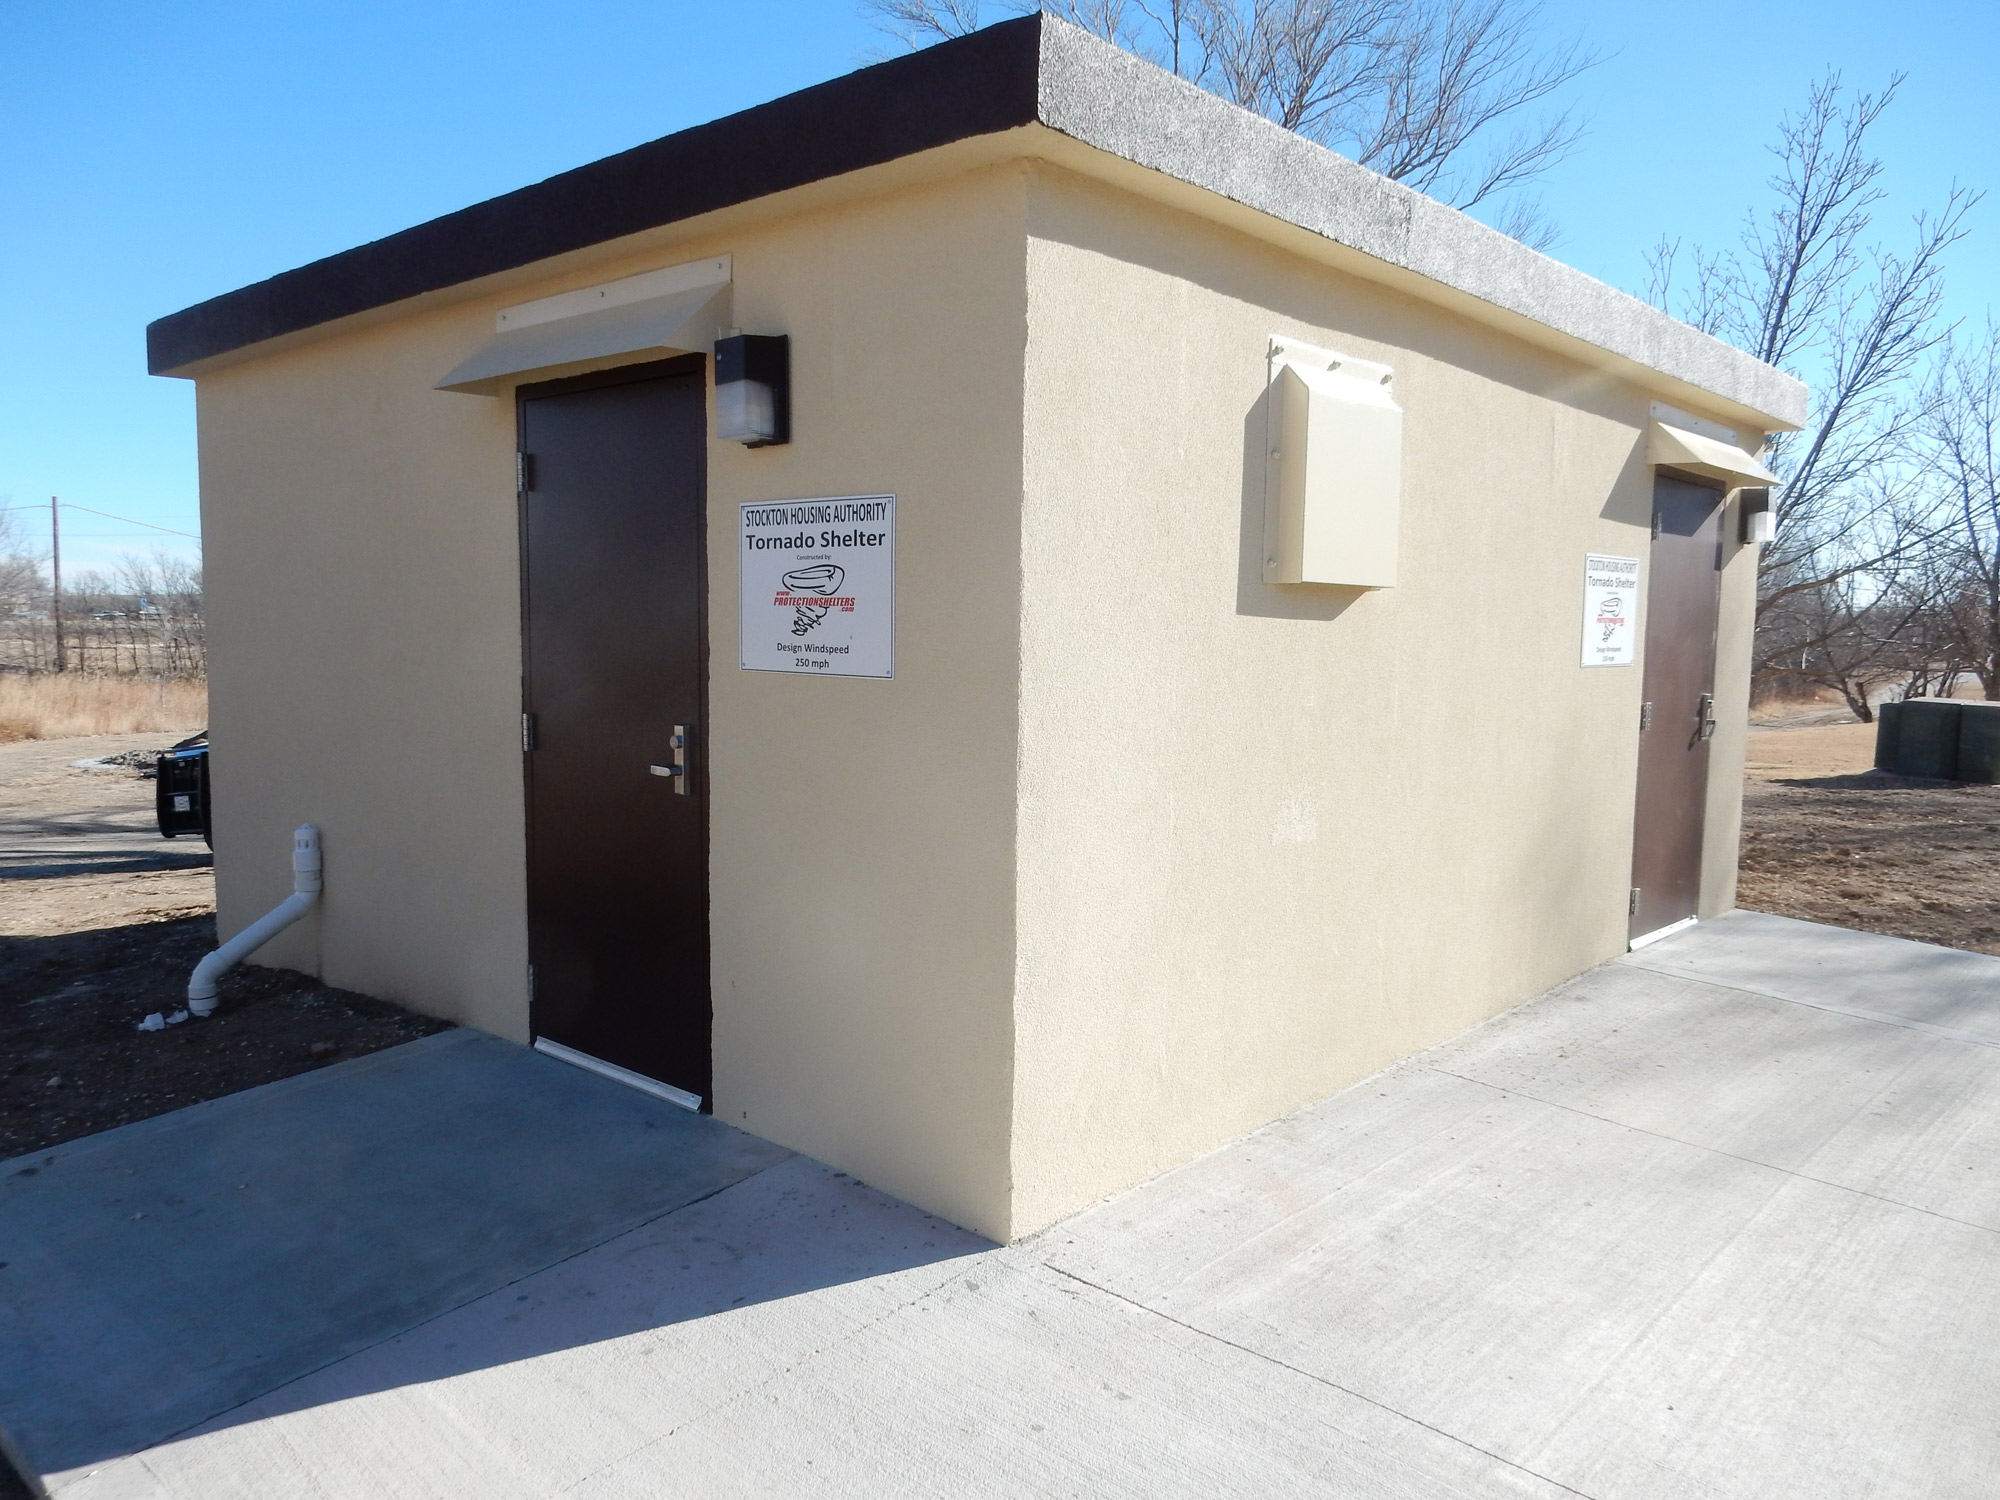 Stockton Housing Authority Group Storm Shelter in Stockton, KS.